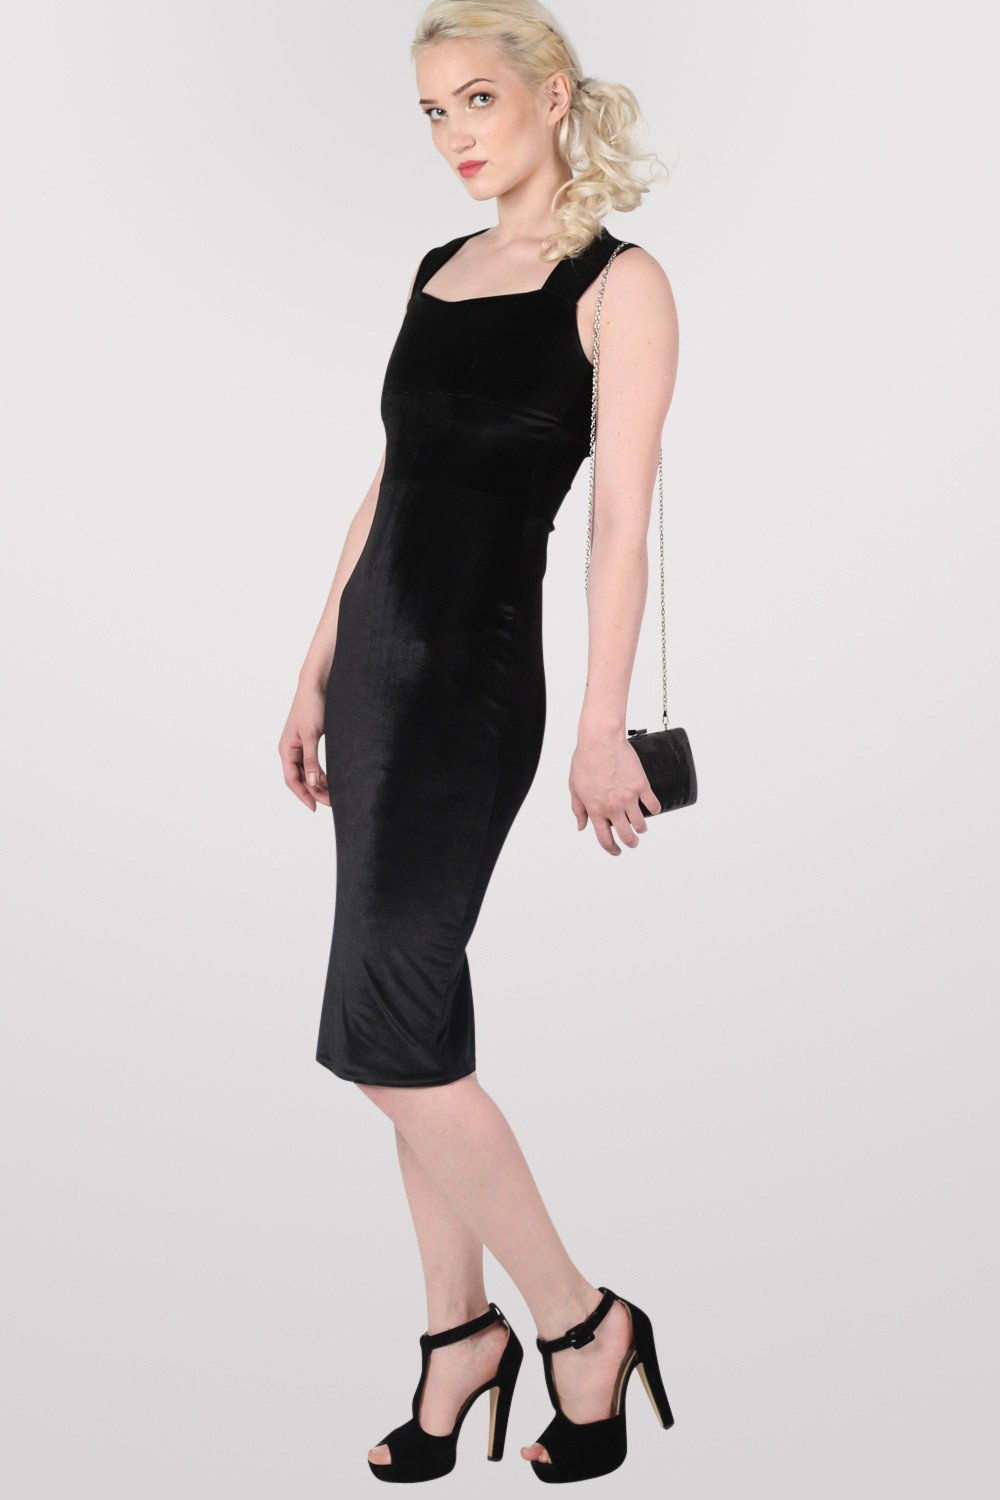 Velvet Bodycon Midi Dress in Black MODEL SIDE